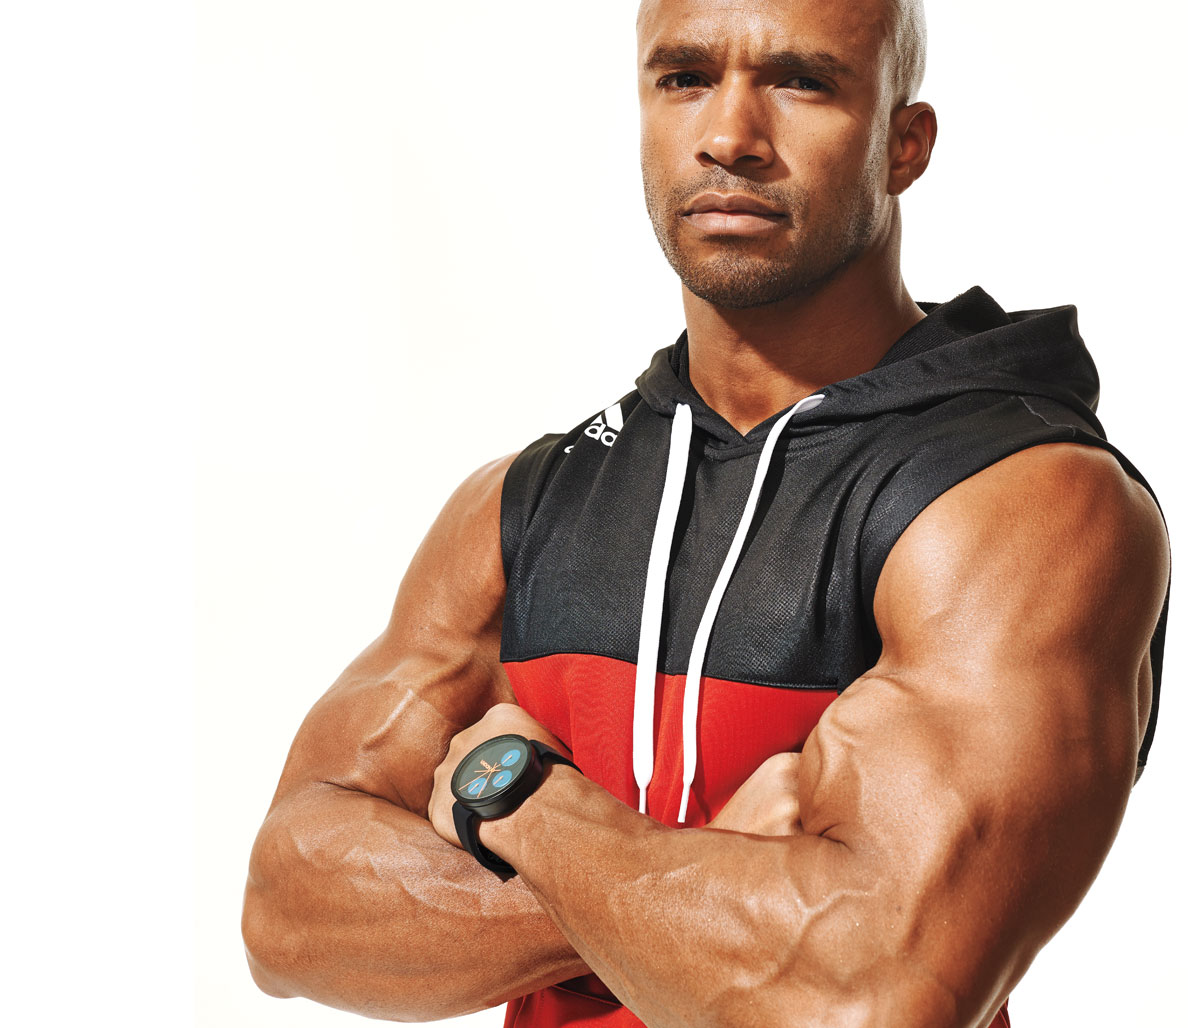 Get big arms with triceps and biceps exercises 1 12 malvernweather Choice Image